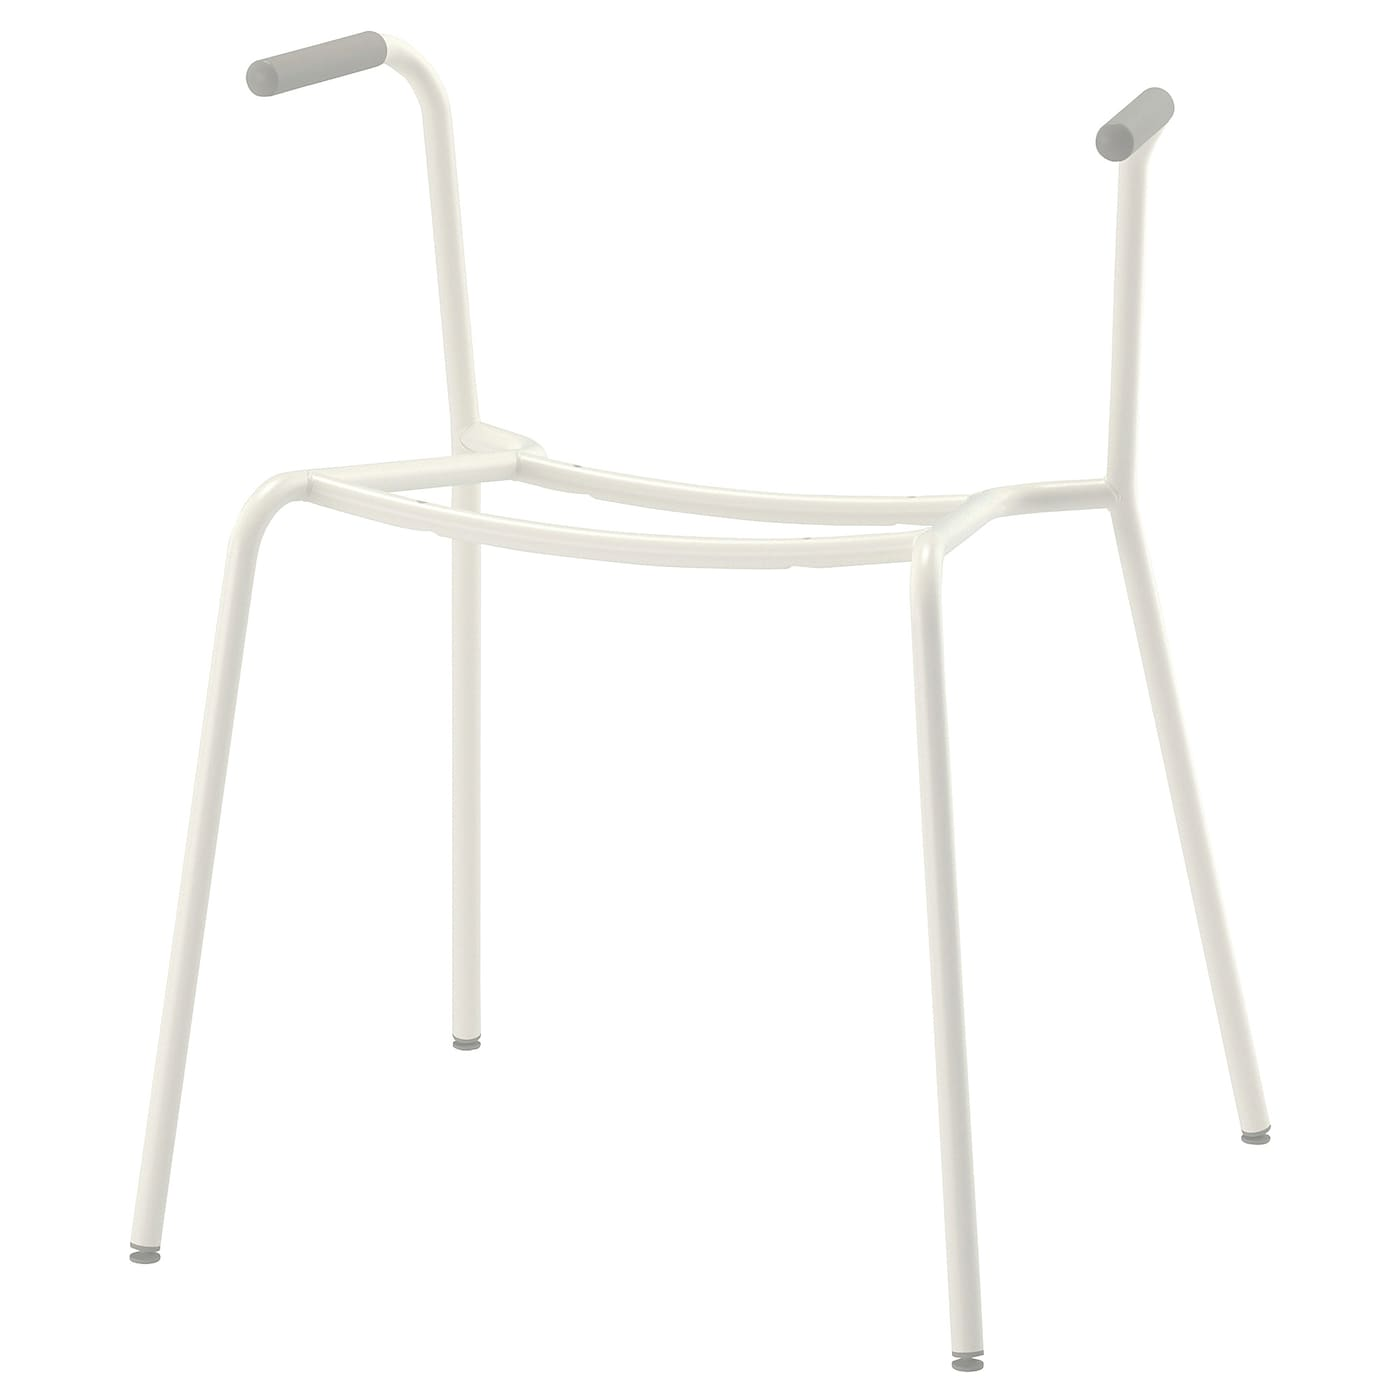 IKEA DIETMAR underframe for chair with armrests You sit comfortably thanks to the armrests.